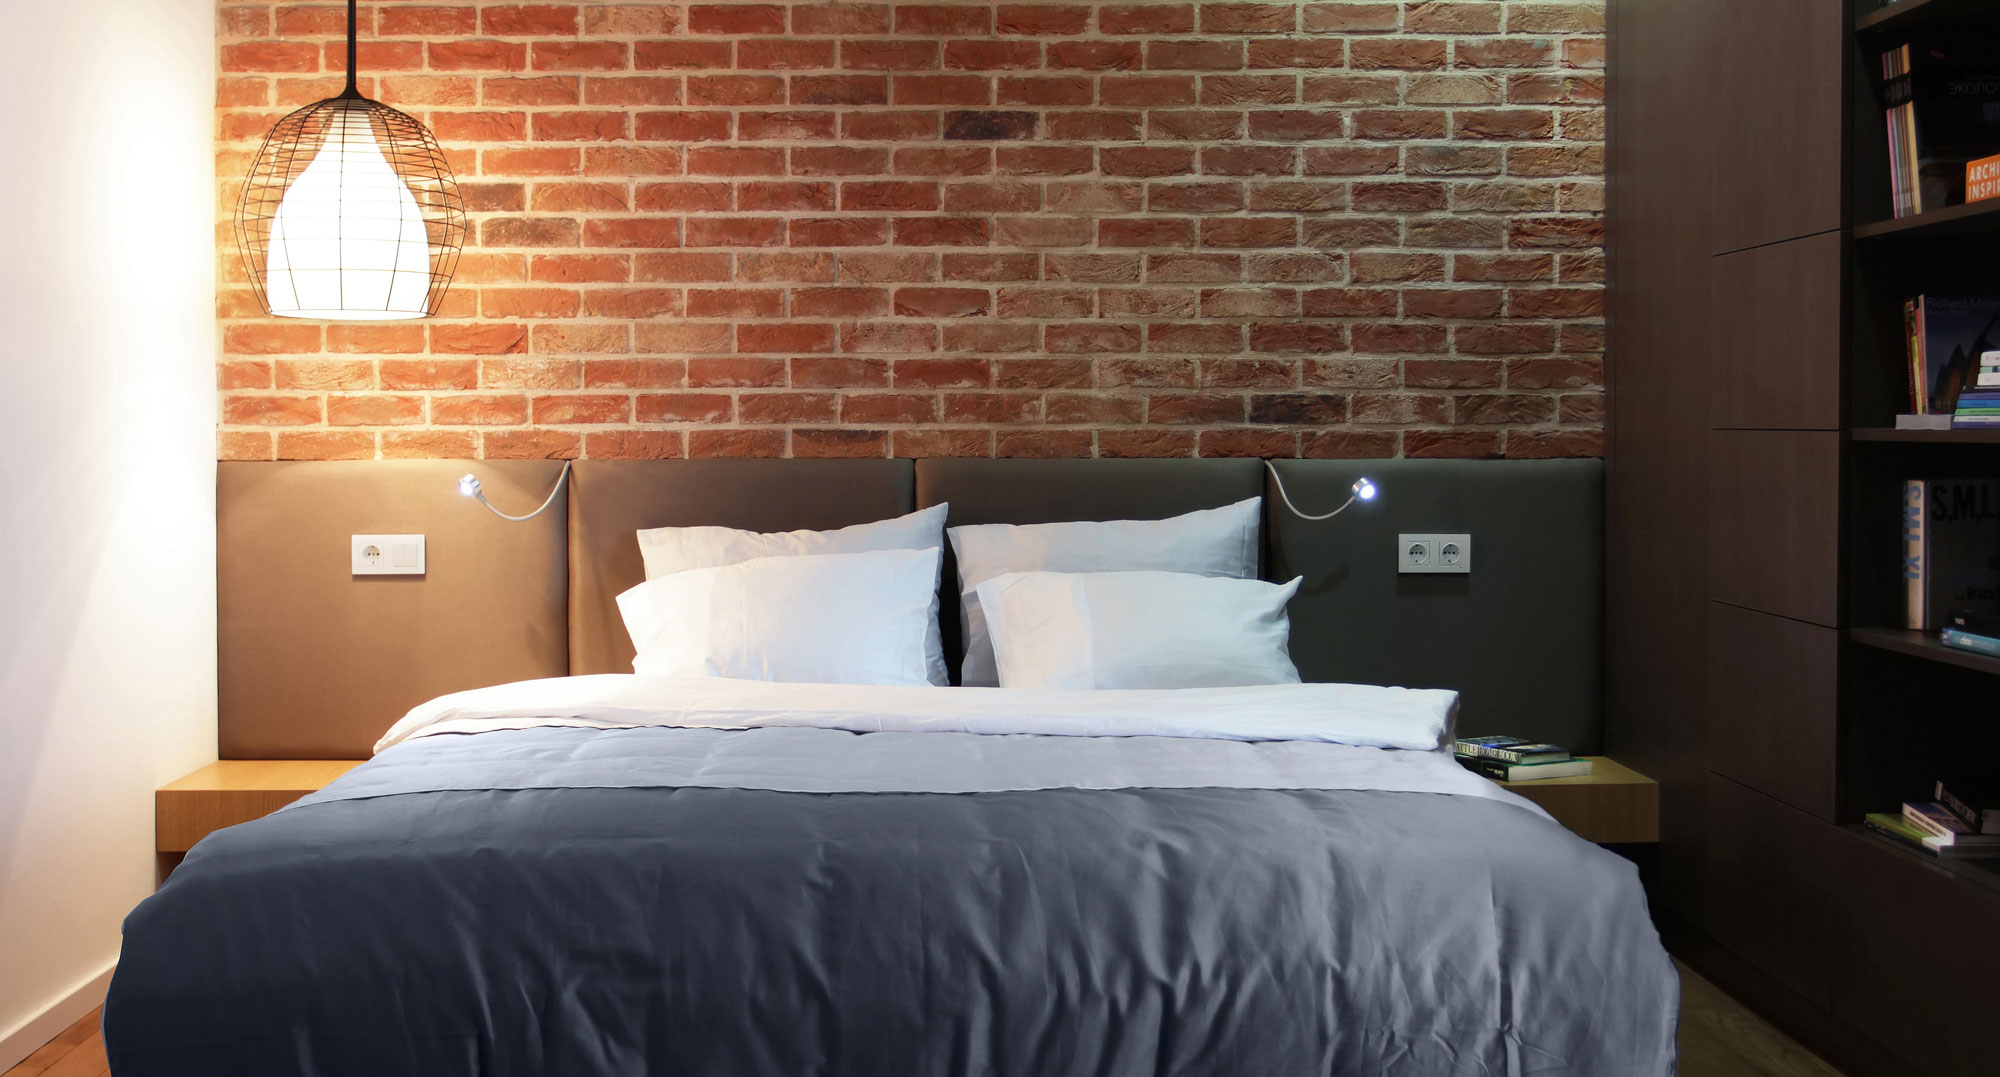 Outstanding Apartment Interior with Exposed Brick Walls  HouseBeauty